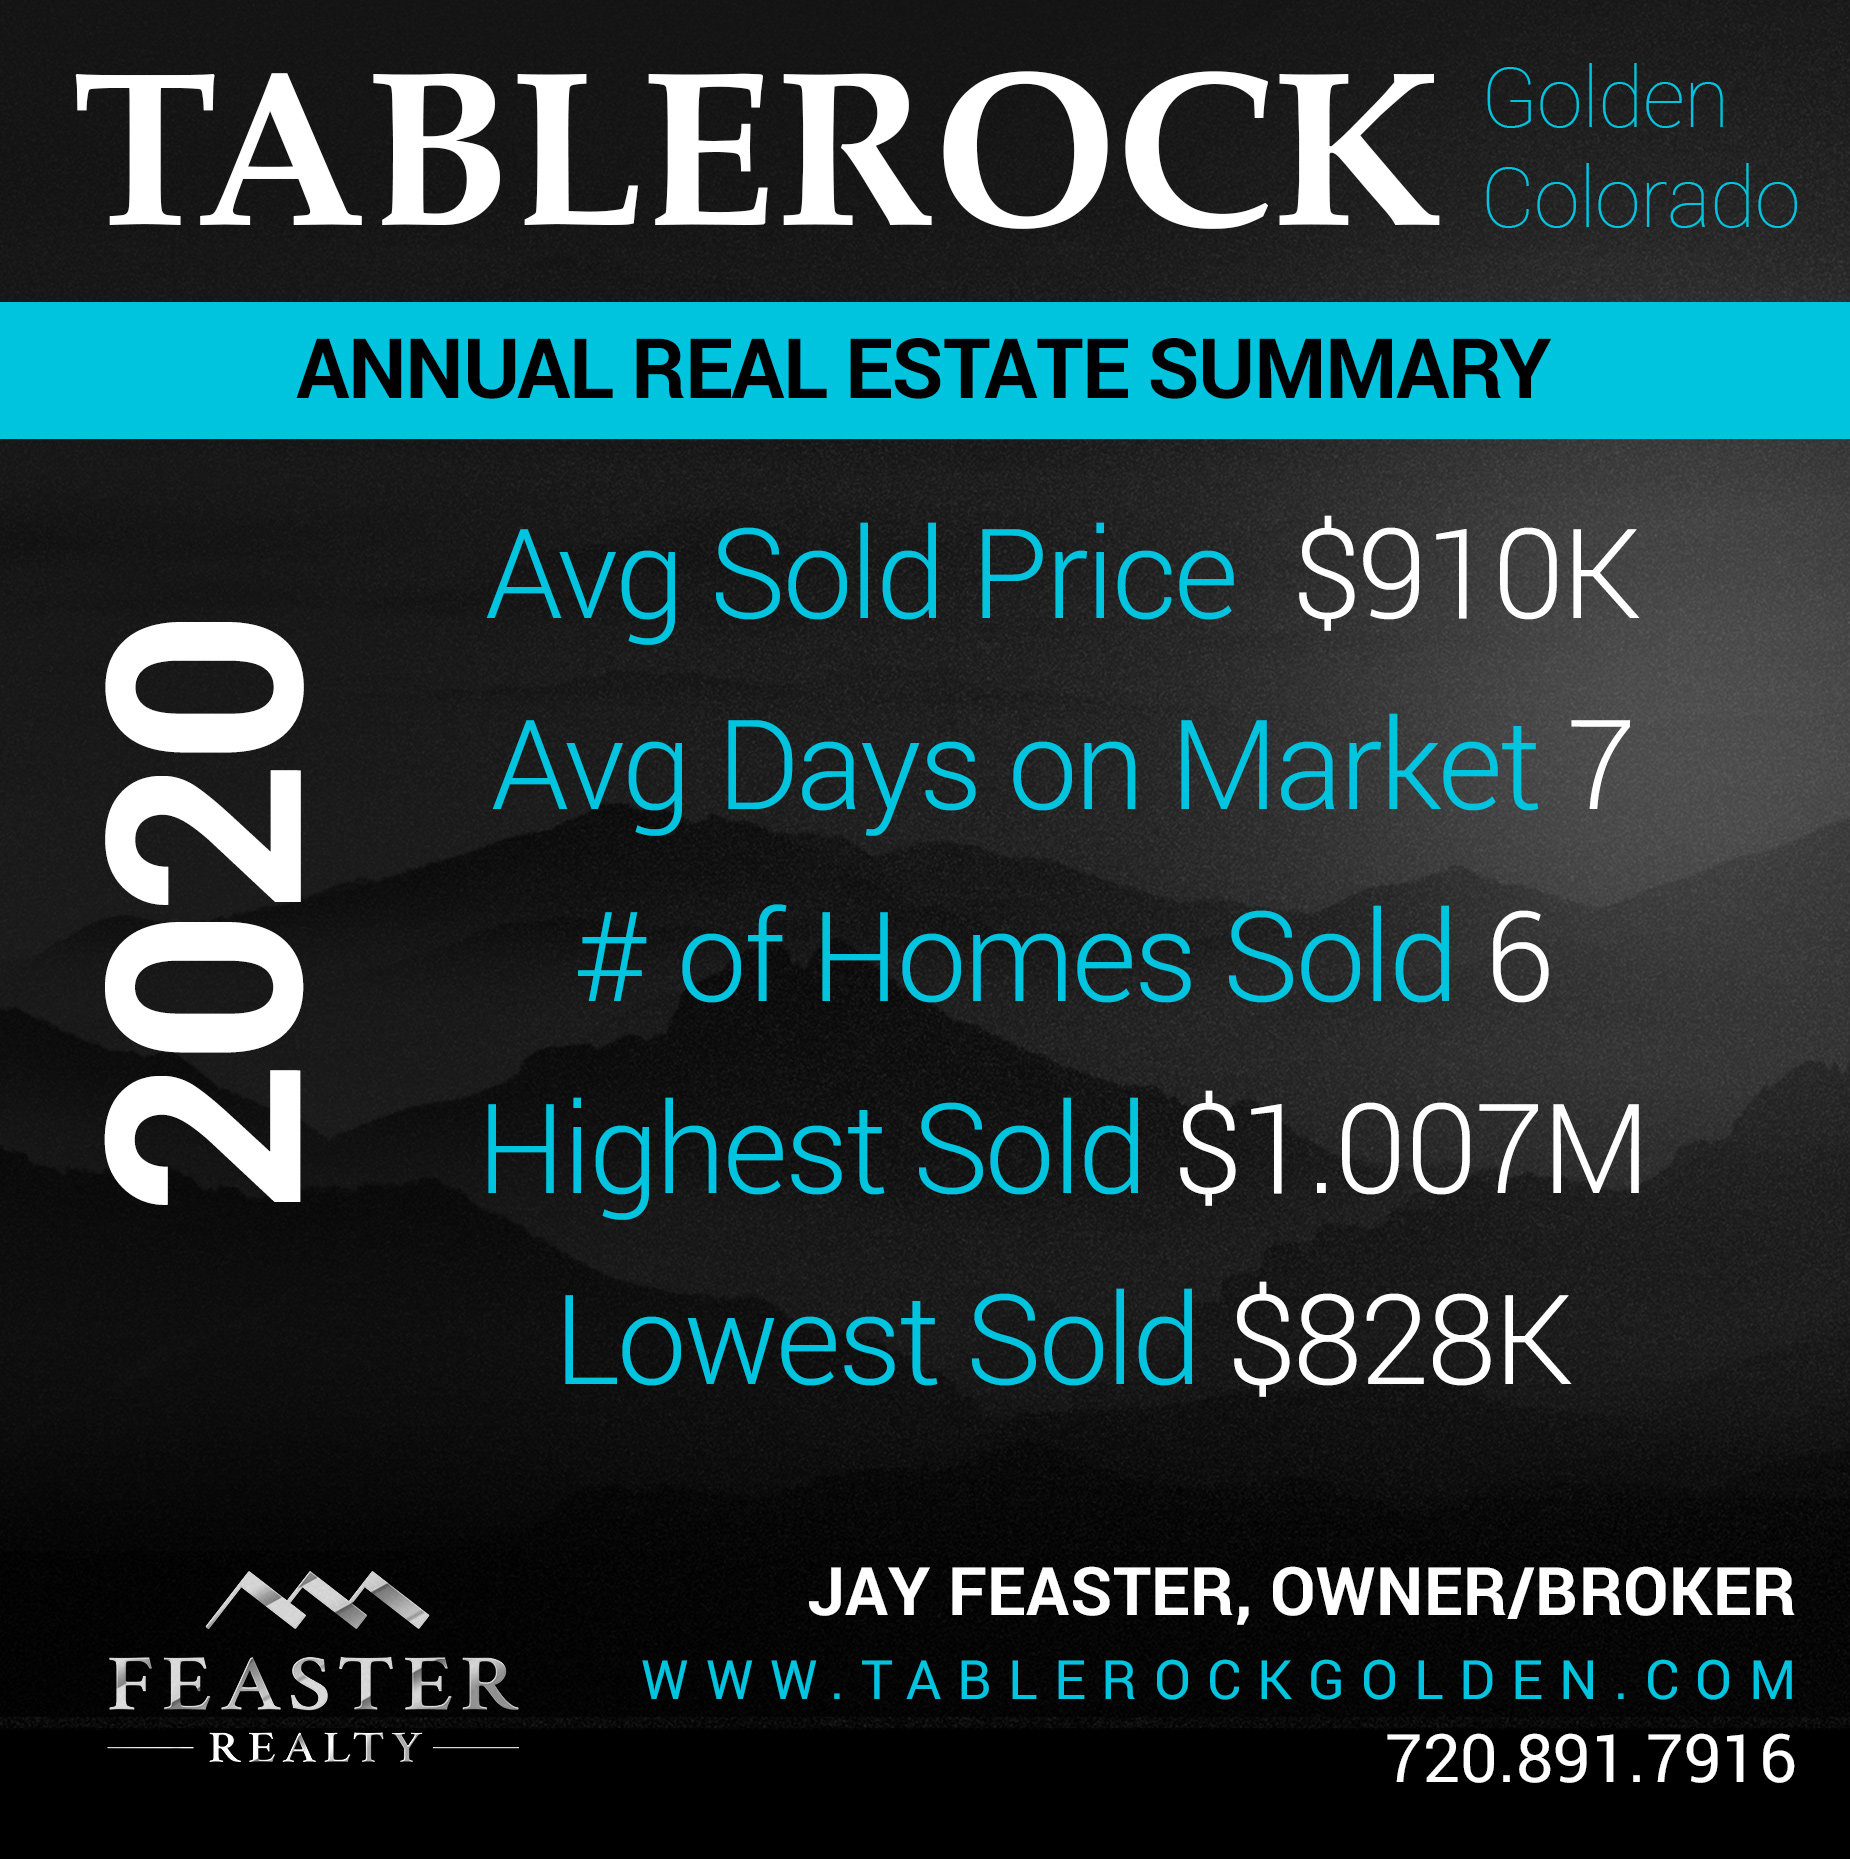 Tablerock Golden 2020 Homes Sold Statisticis